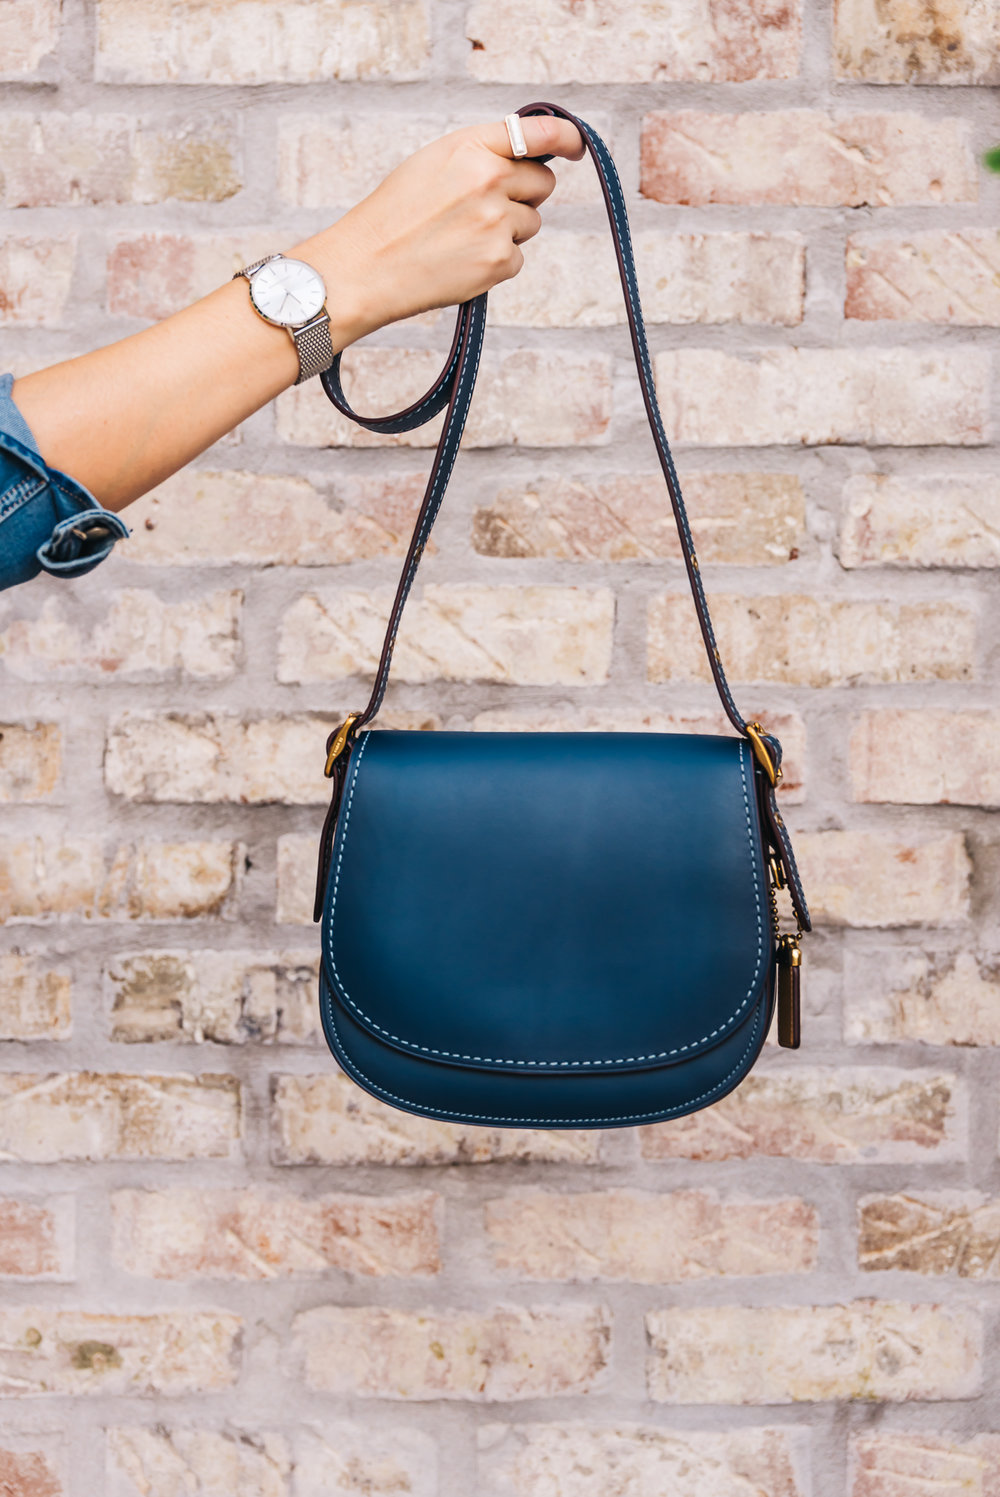 30200936f59c My Travel Purse Obsession  The COACH Saddle Bag - Travel Pockets